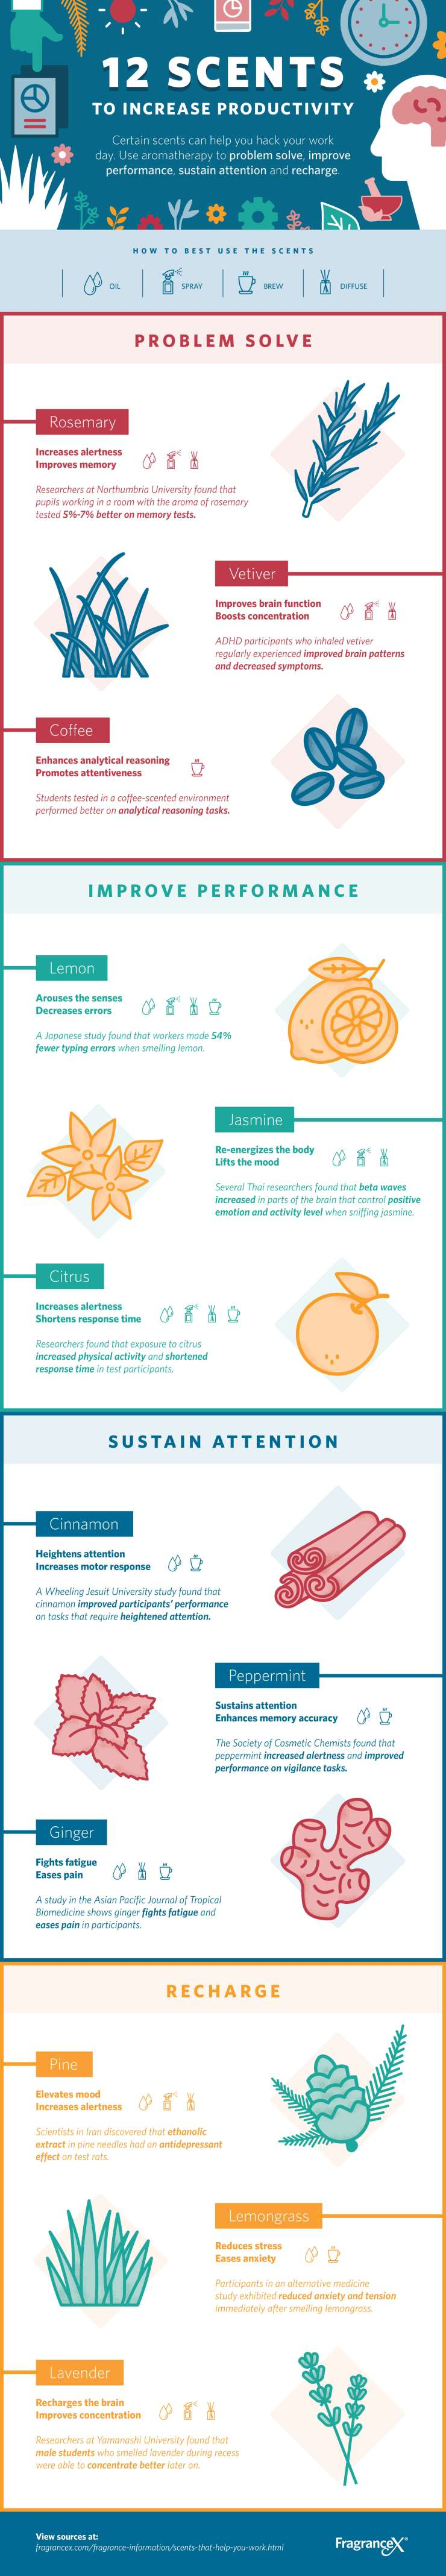 12 Scents That Will Make You More Productive [Infographic]